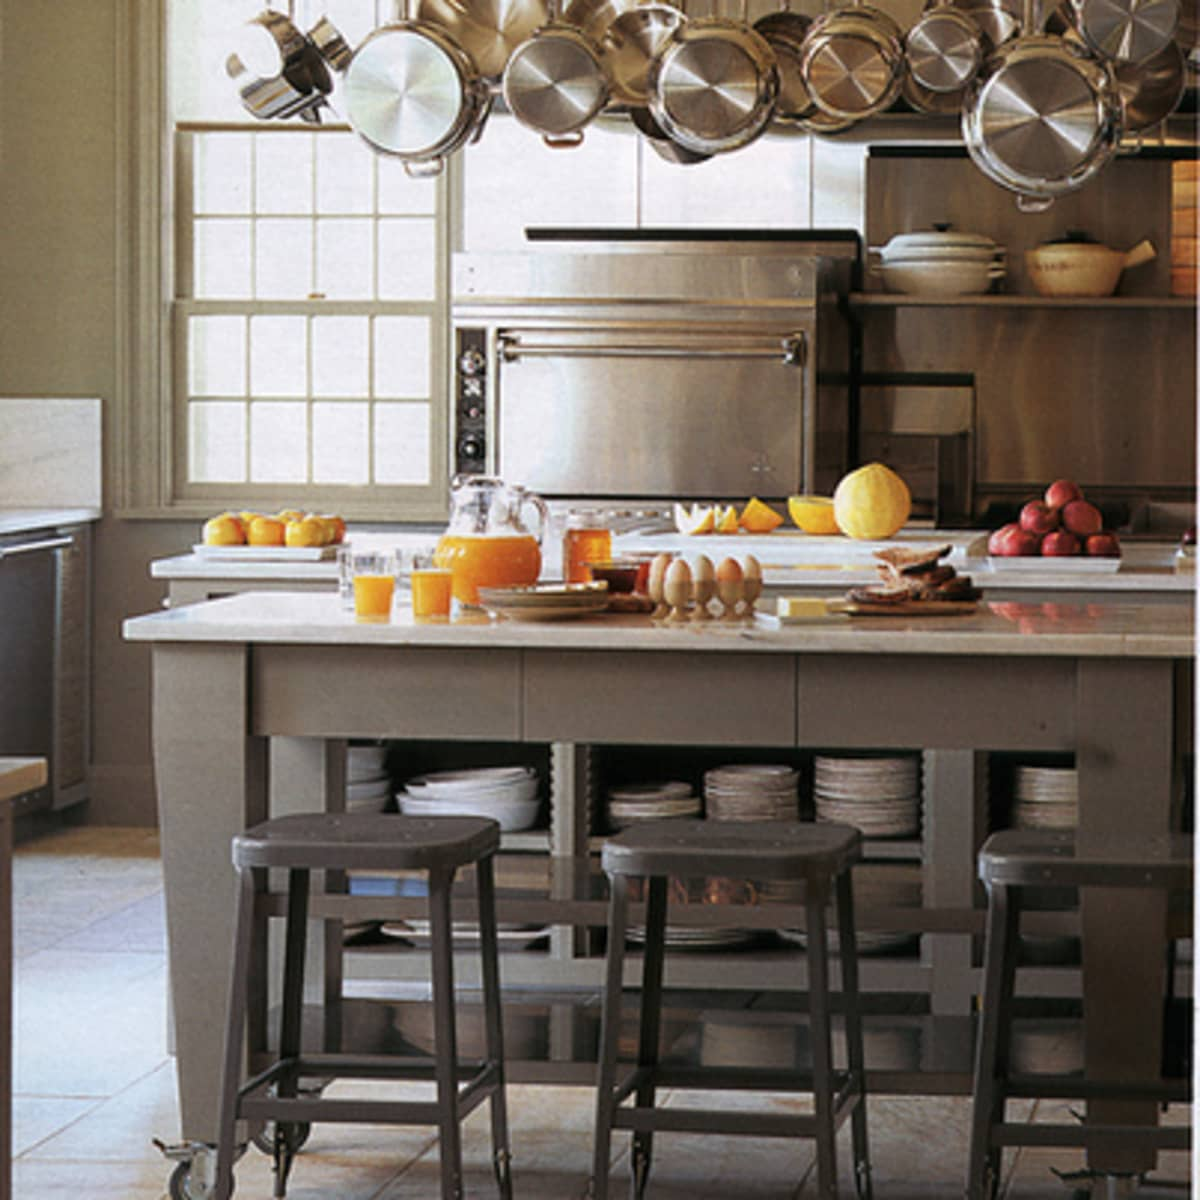 Little Ideas For Making A Small Kitchen Feel Bigger Dengarden Home And Garden